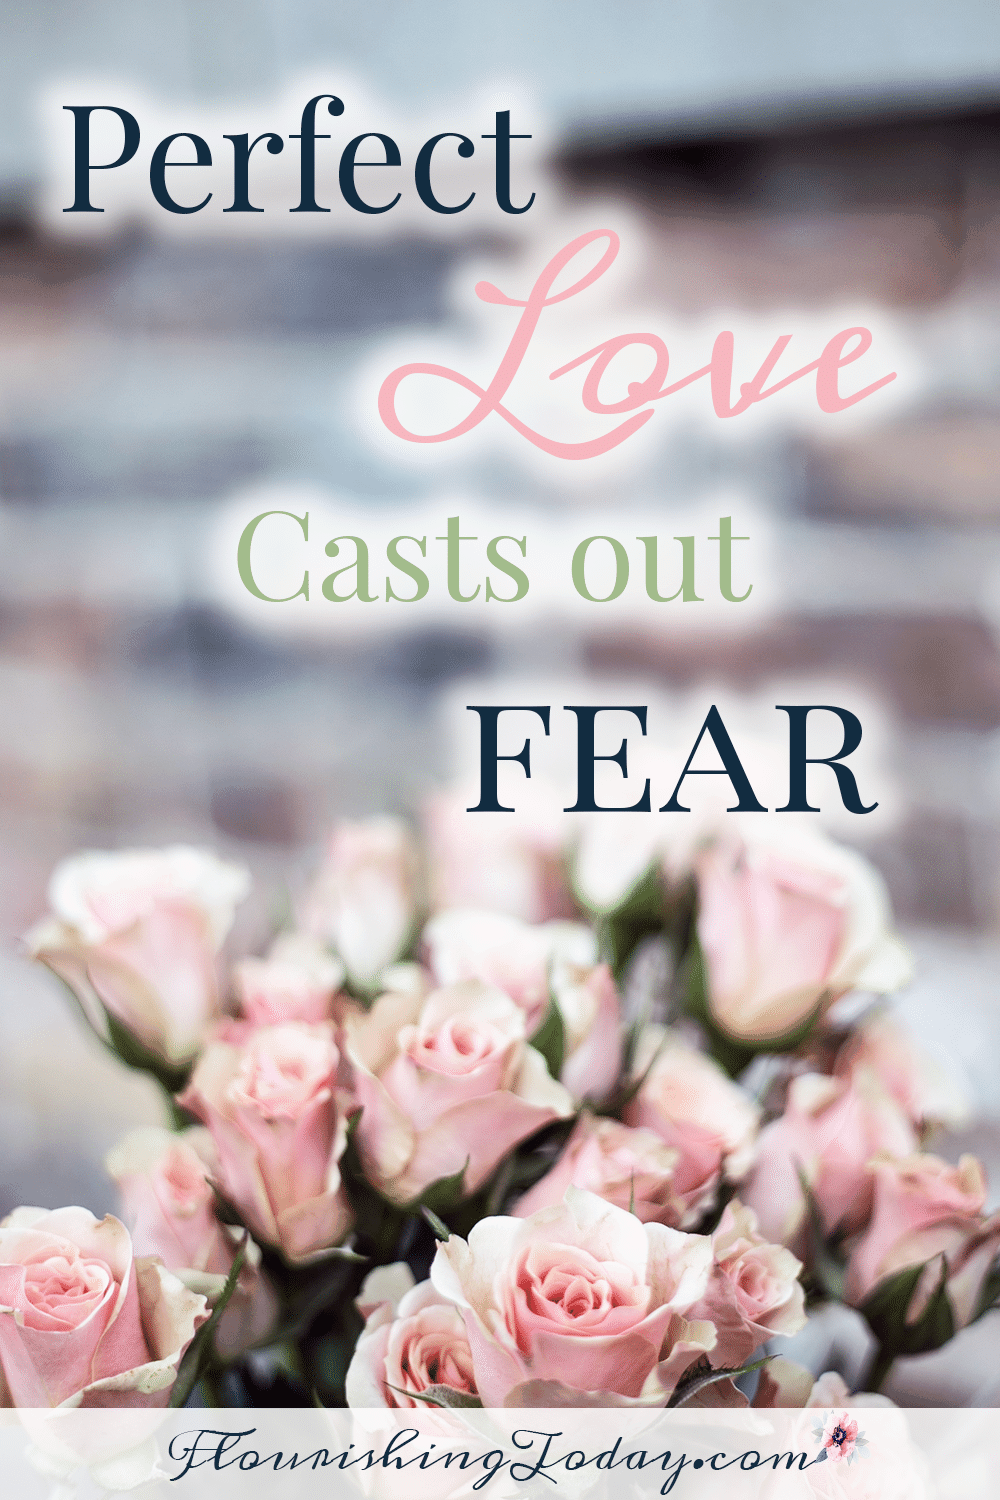 Perfect love casts out fear | Overcoming fear | God's love | Anxiety | Defeating Fear | Studying the Word | Bible Verses for Fear |